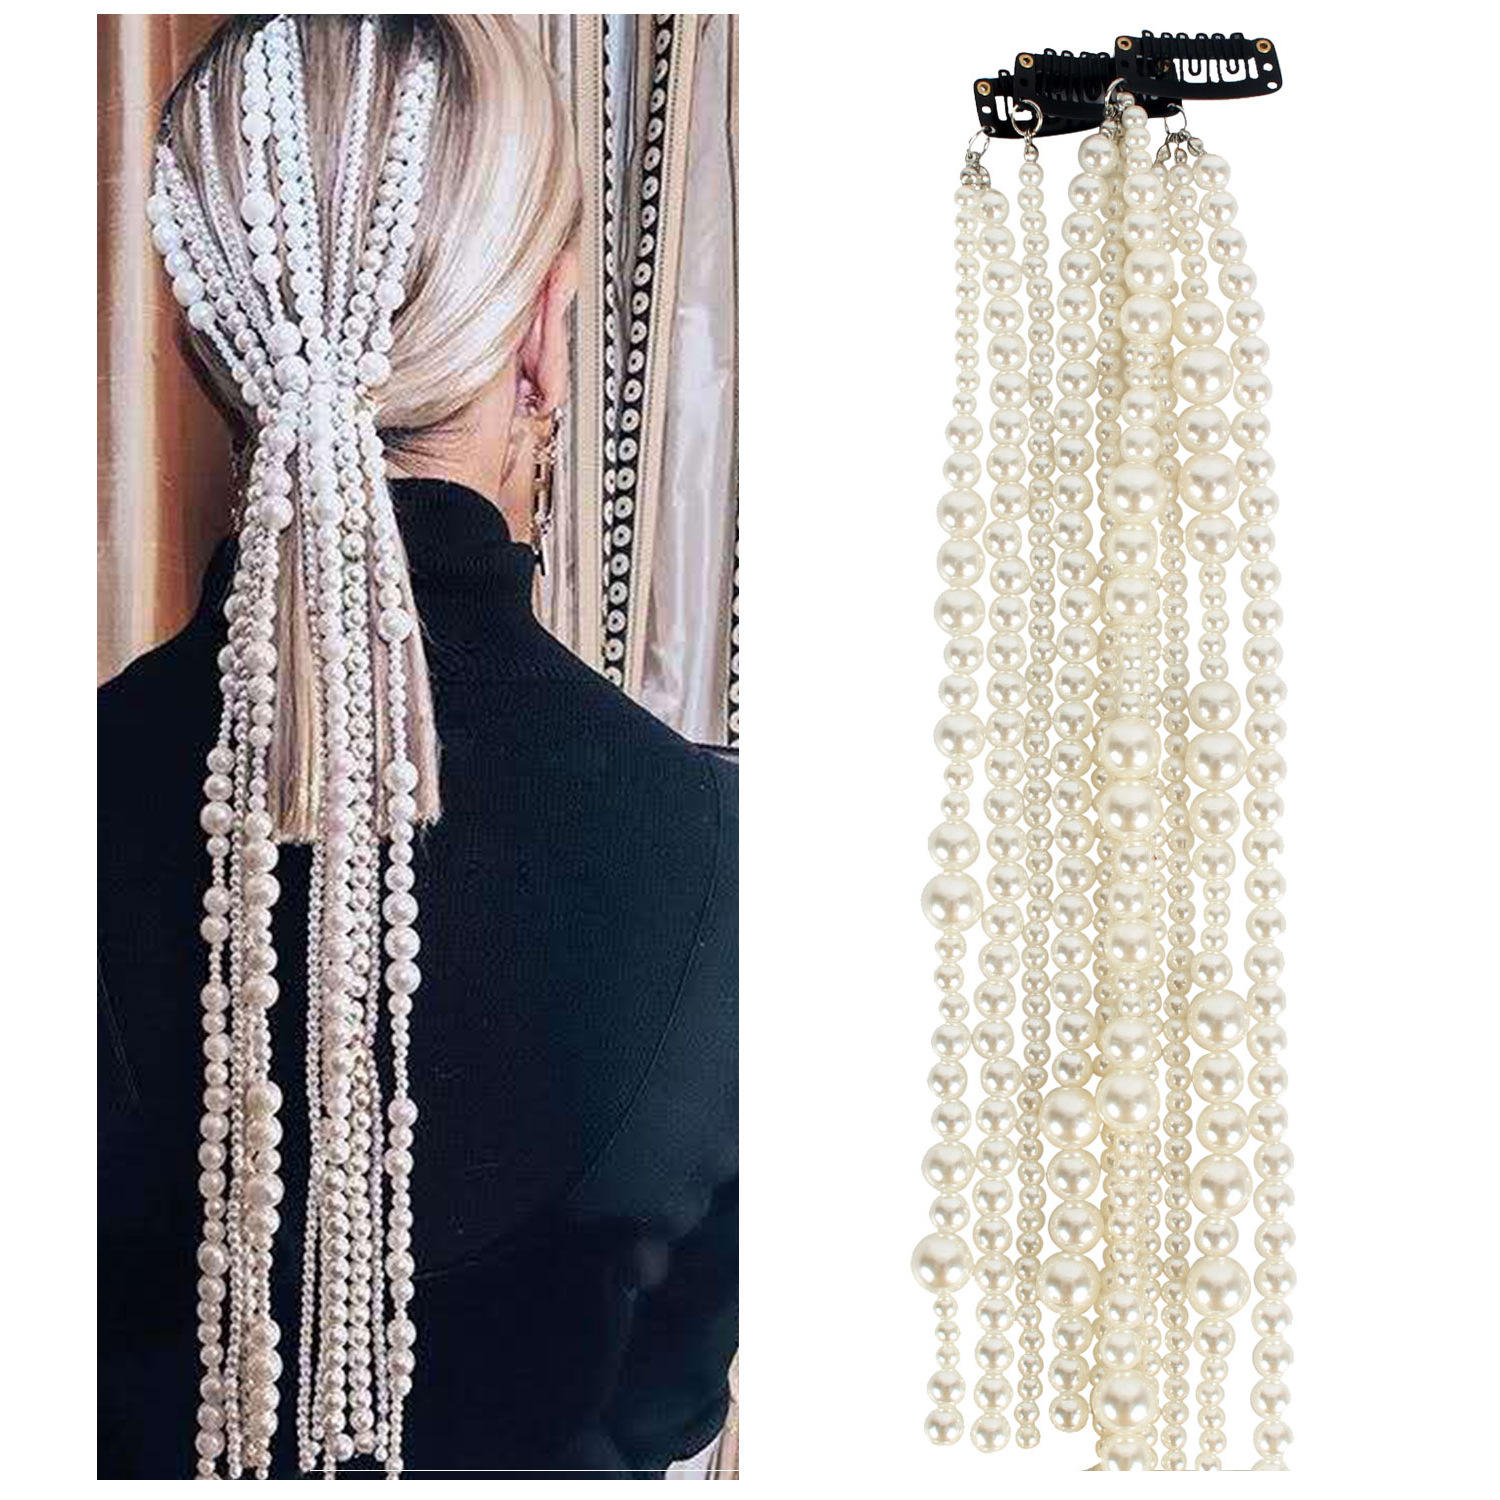 SHIHAN F11200J Creative White Multilayer Imitation Pearl Hair Accessories 2021 Fashion Jewelry Women Long Alloy Hair Chain